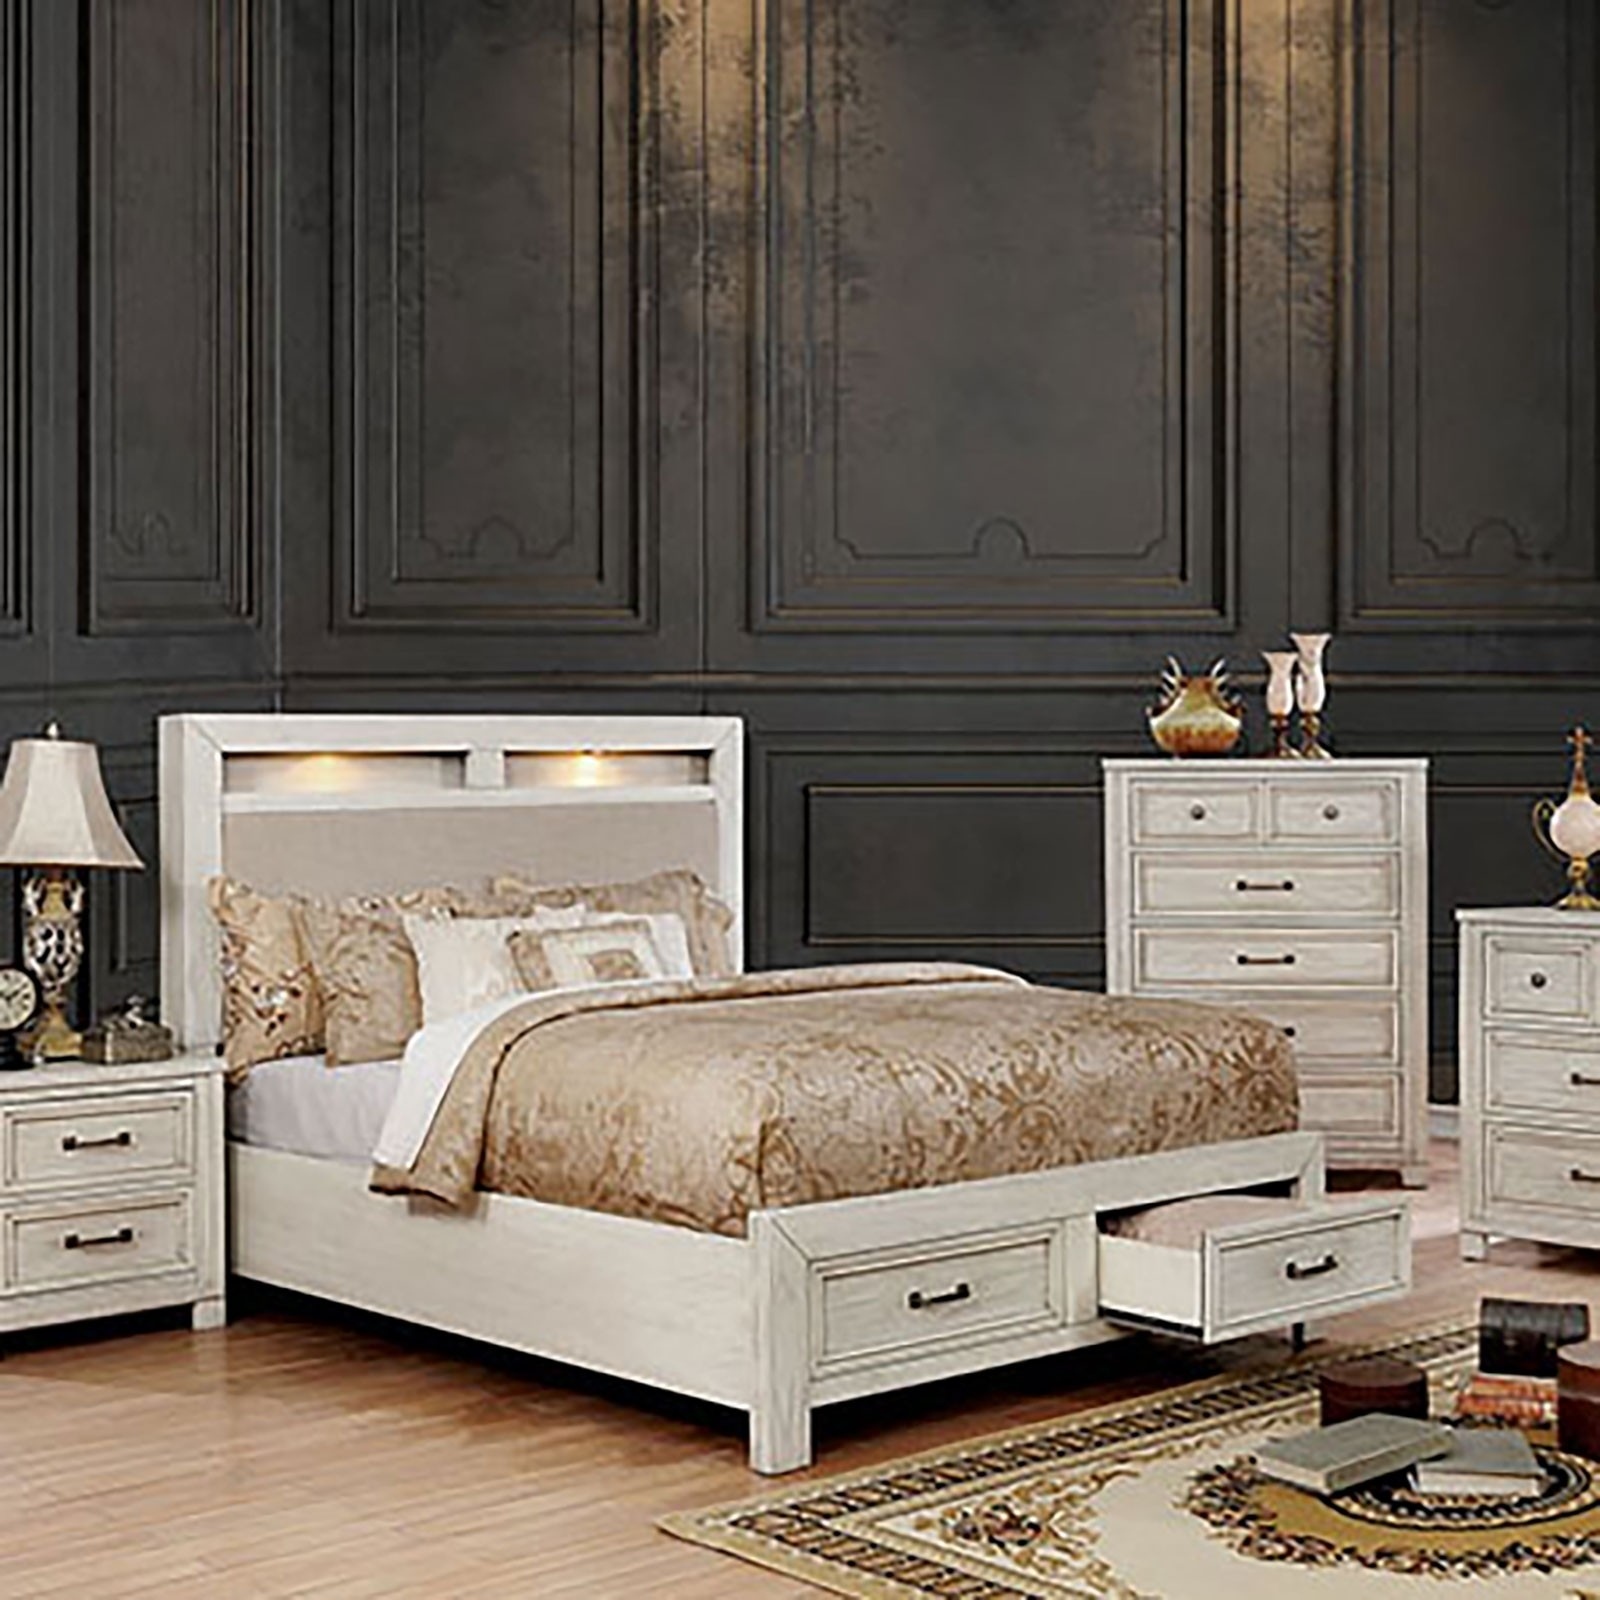 Tywyn Bedroom Set In Antique White By Furniture Of America